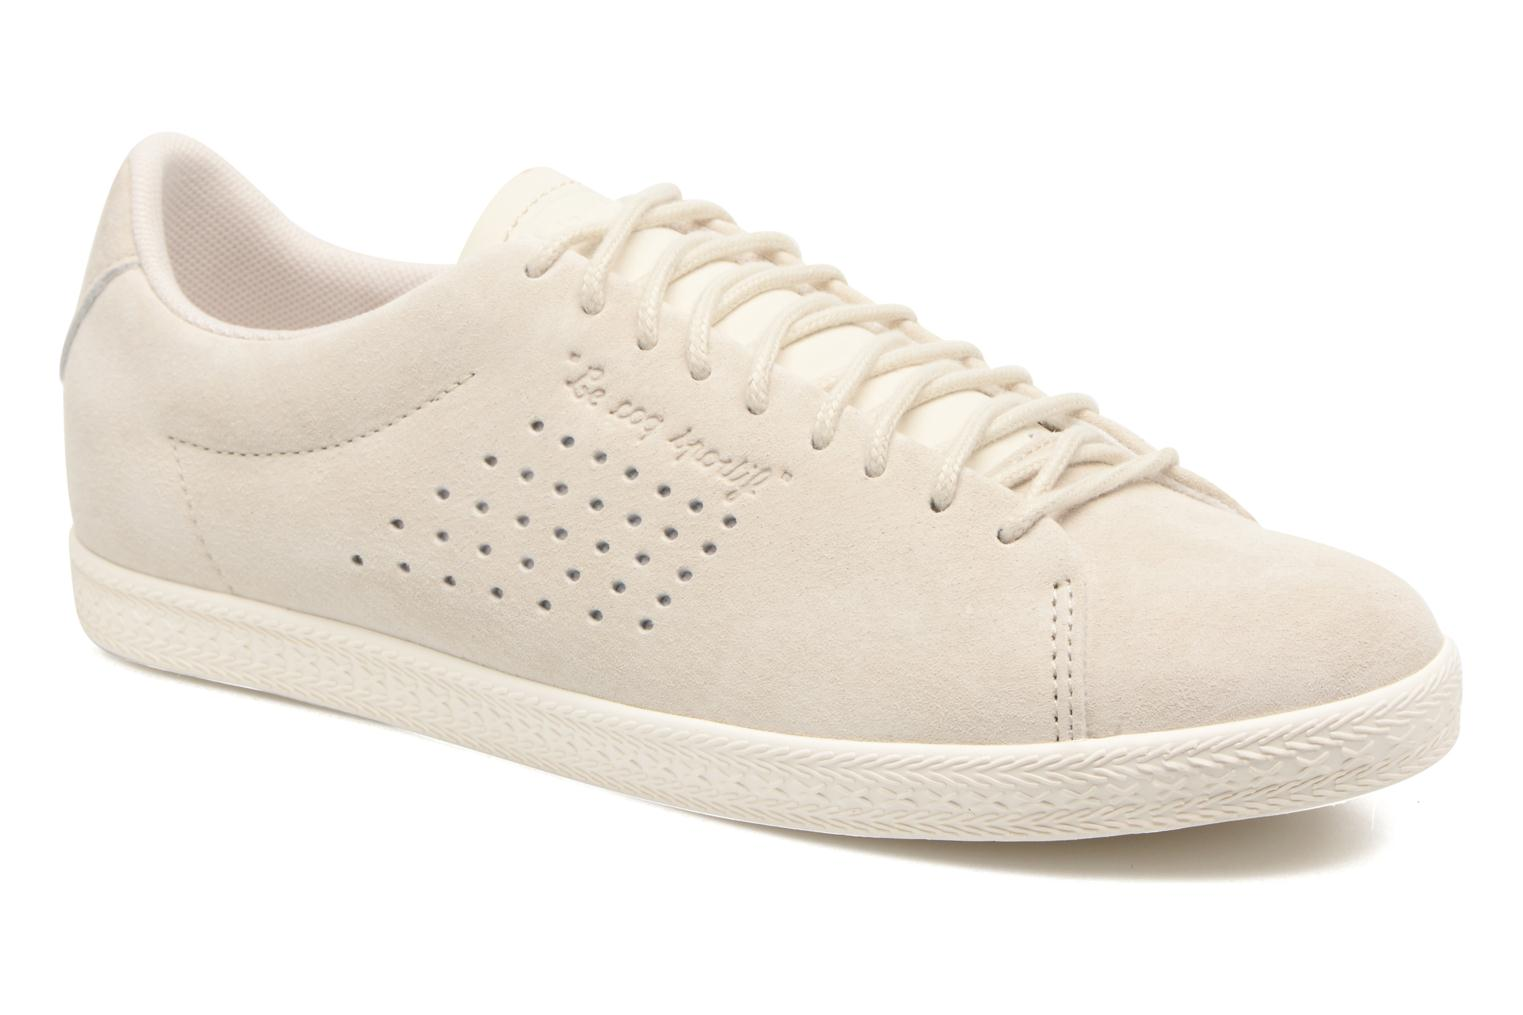 Charline Nubuck Turtle dove